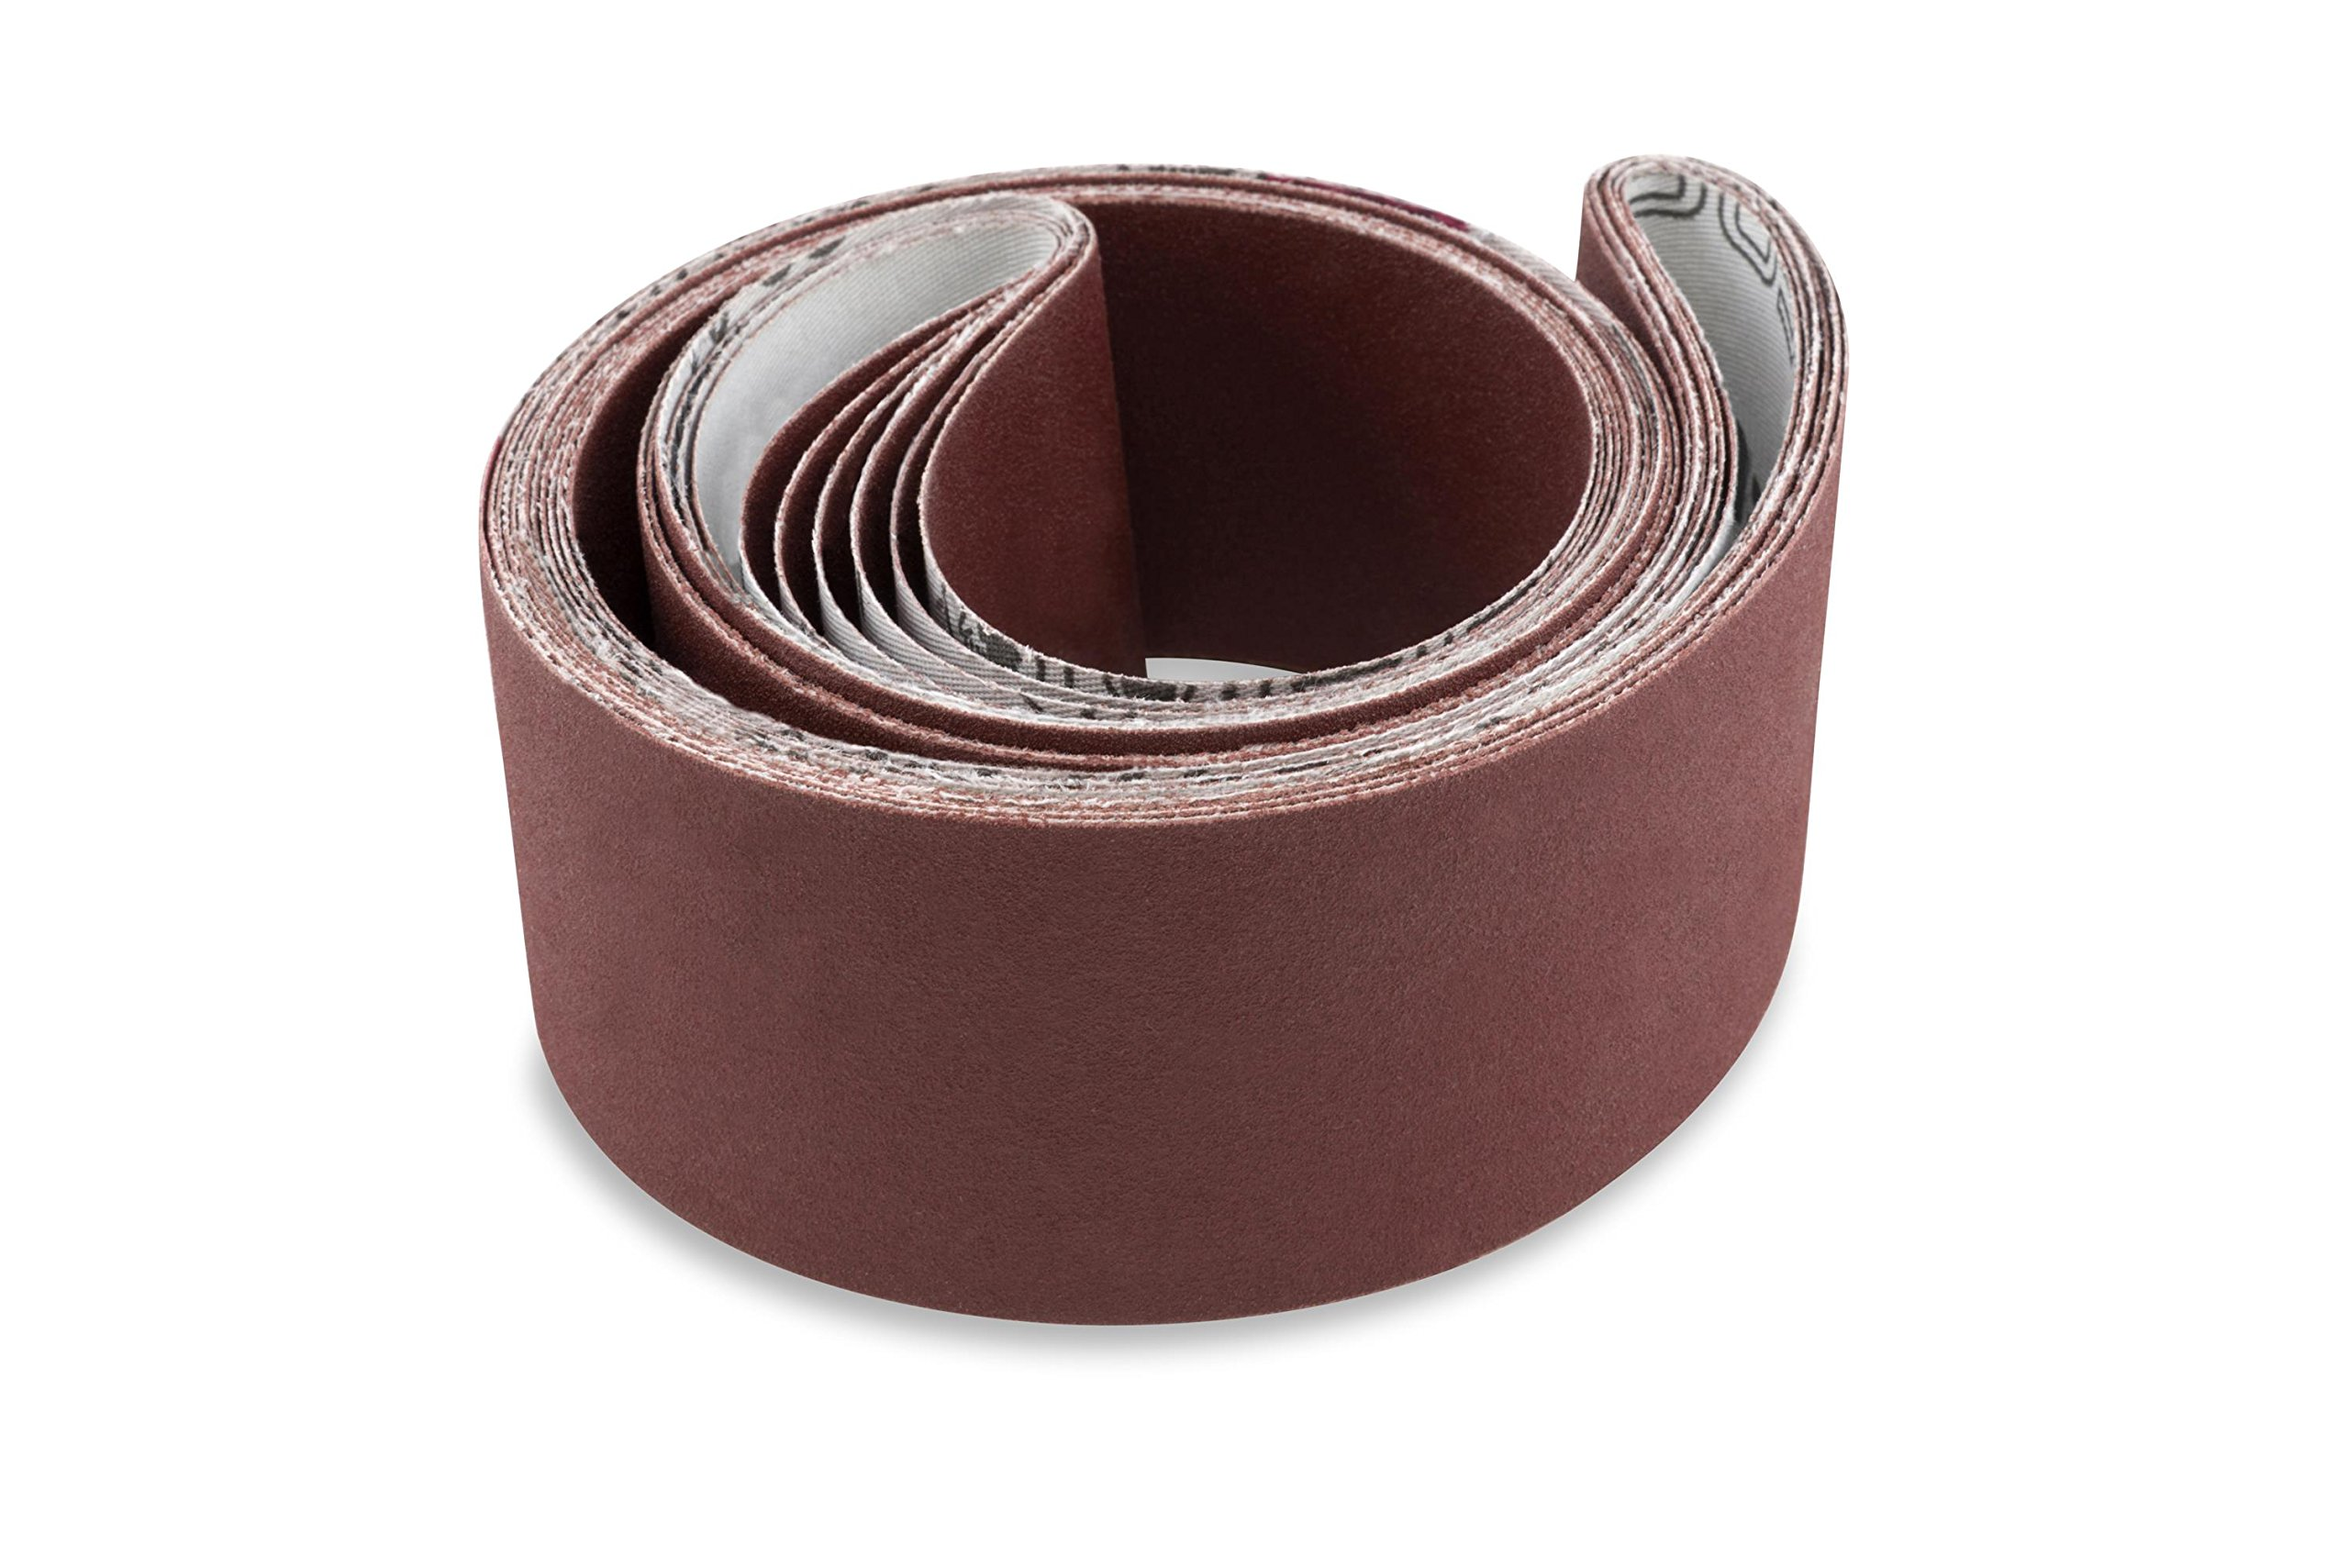 2 X 48 Inch 400 Grit Flexible Aluminum Oxide Multipurpose Sanding Belts, 6 Pack by Red Label Abrasives